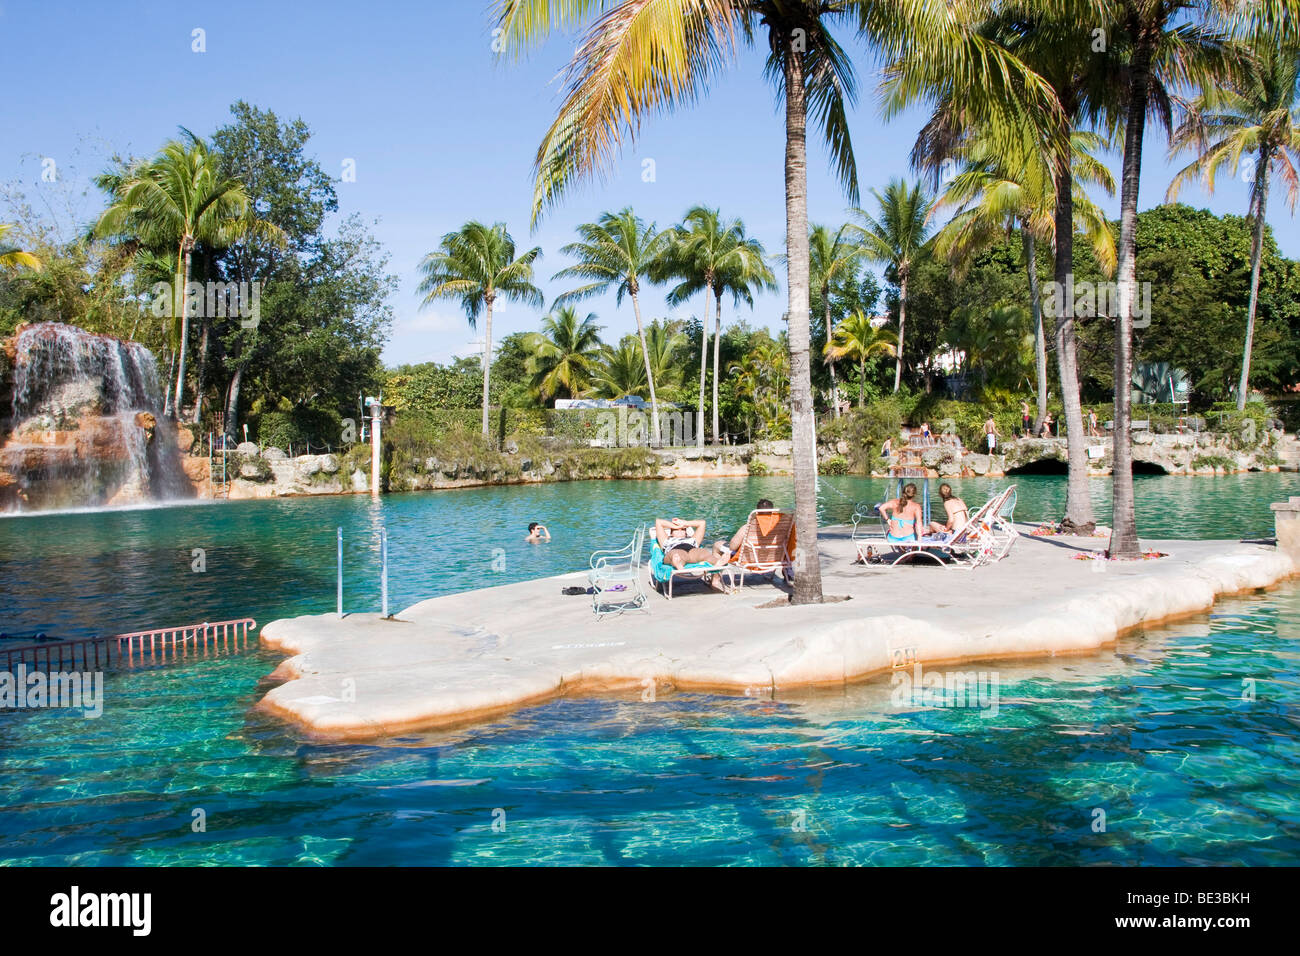 Swimming pool, Venetian Pools in Coral Gables, Miami, Florida, USA Stock Photo